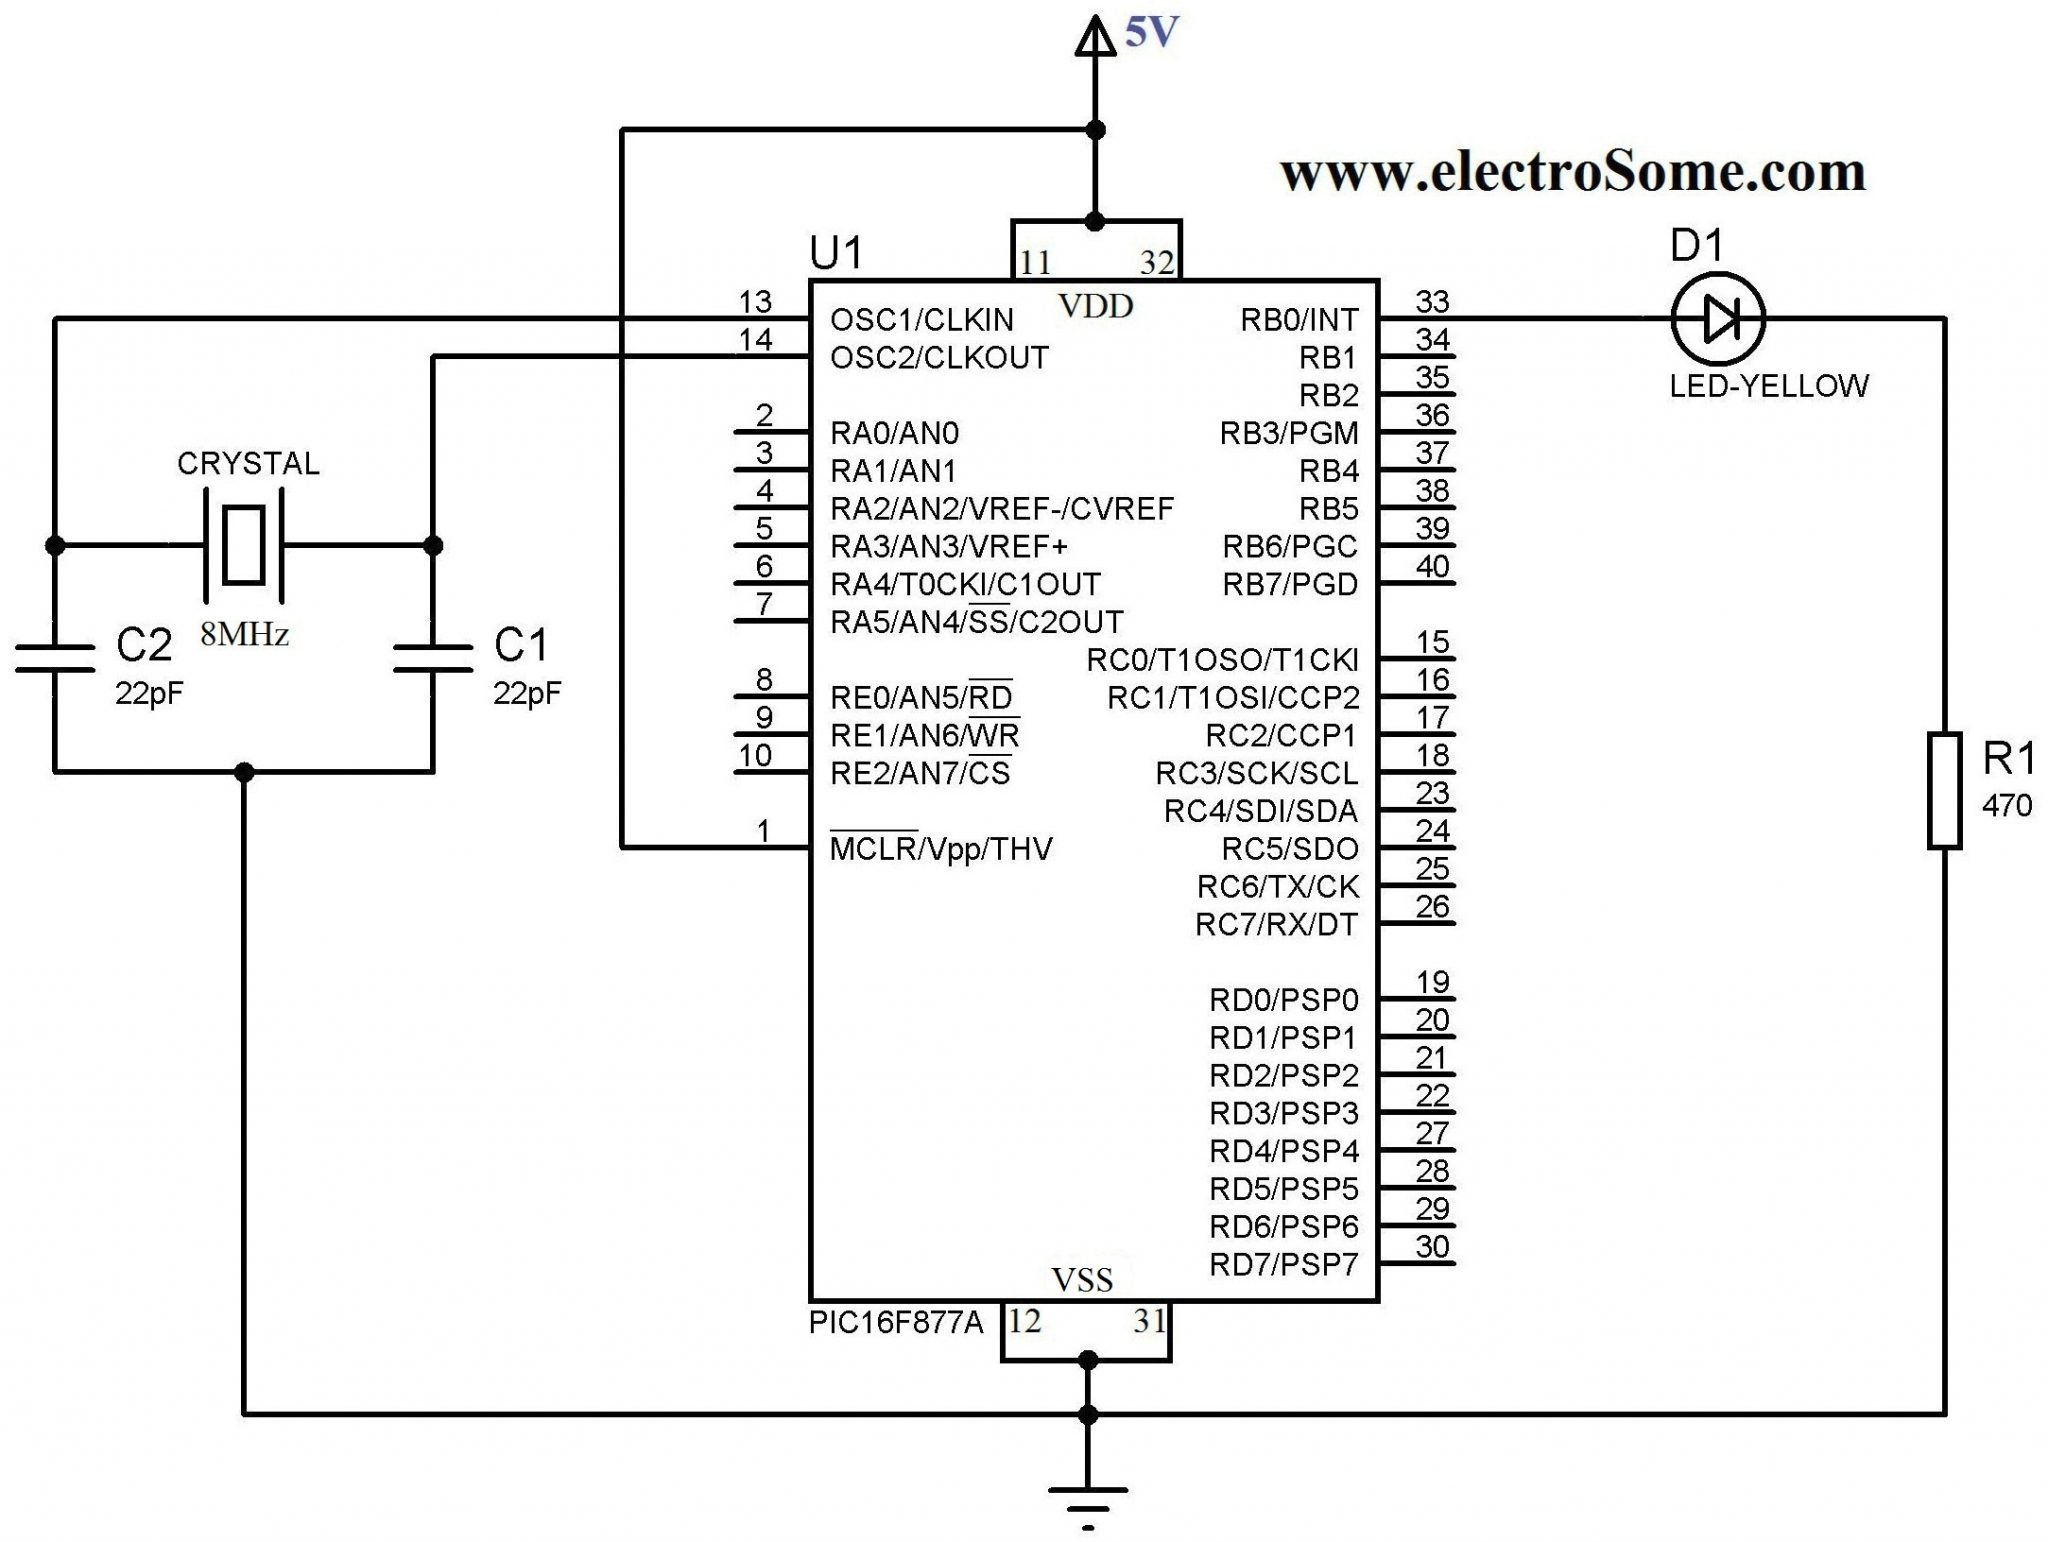 Led Blinking With Pic Microcontroller Mplab Xc8 Compiler 7805 Pin Diagram Using Circuit